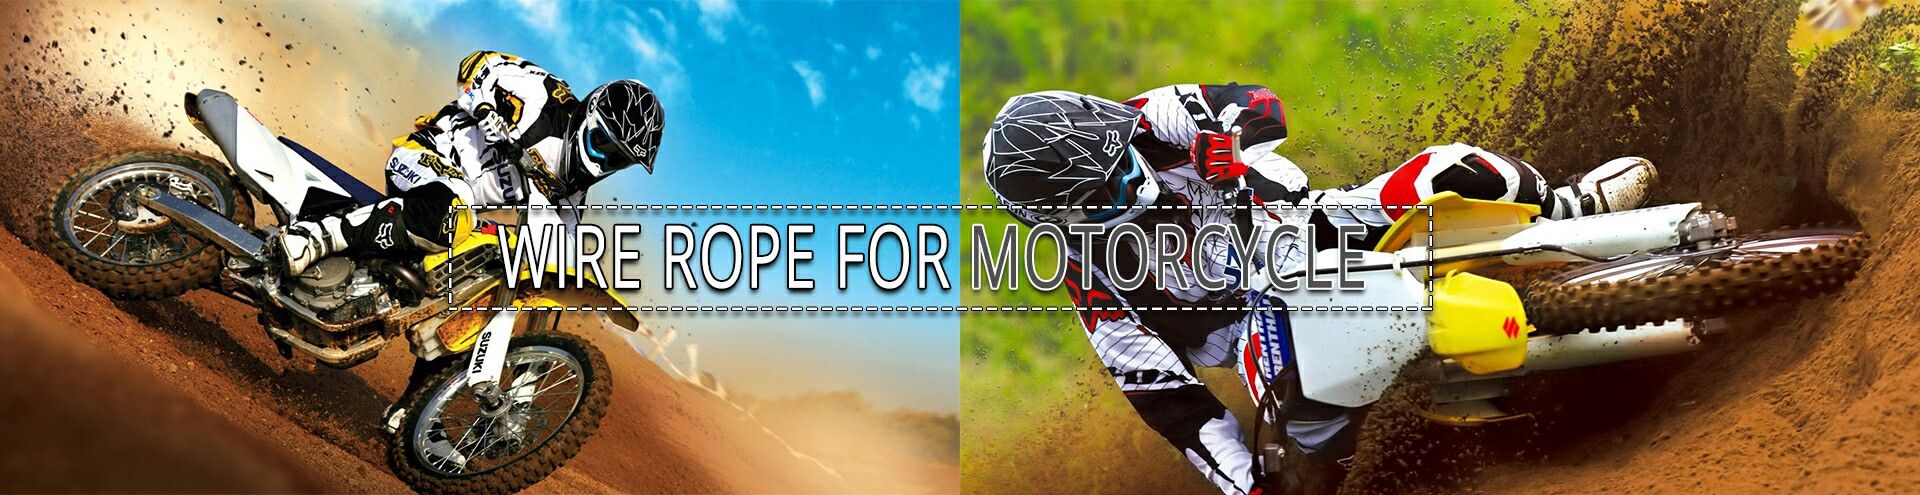 pswirerope wire rope for motorcycle